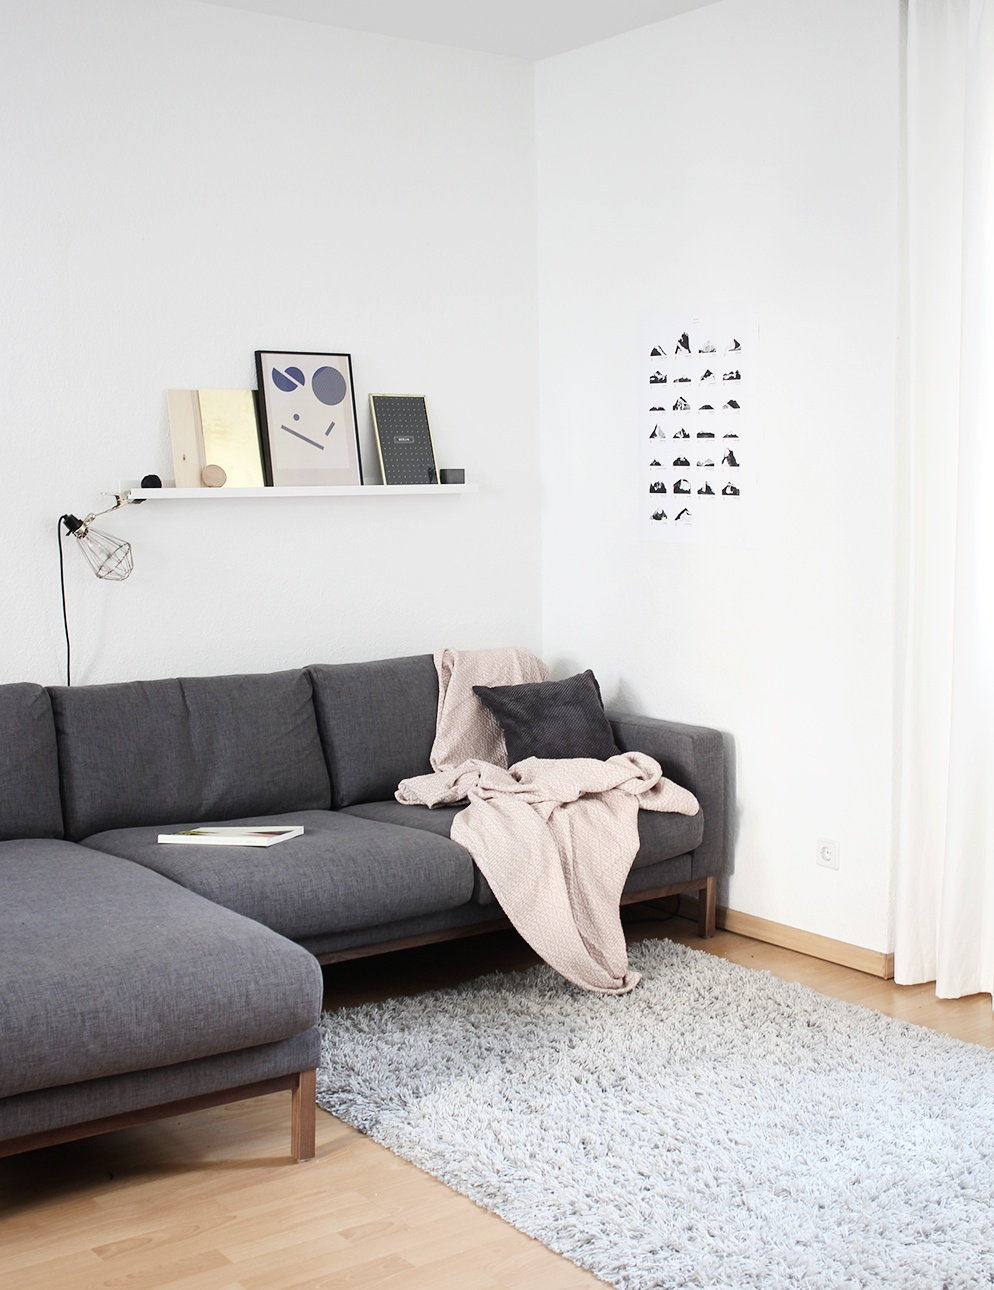 couch bed tumblr. Via · Minimal Living Room Tumblr Collection #14 Couch Bed